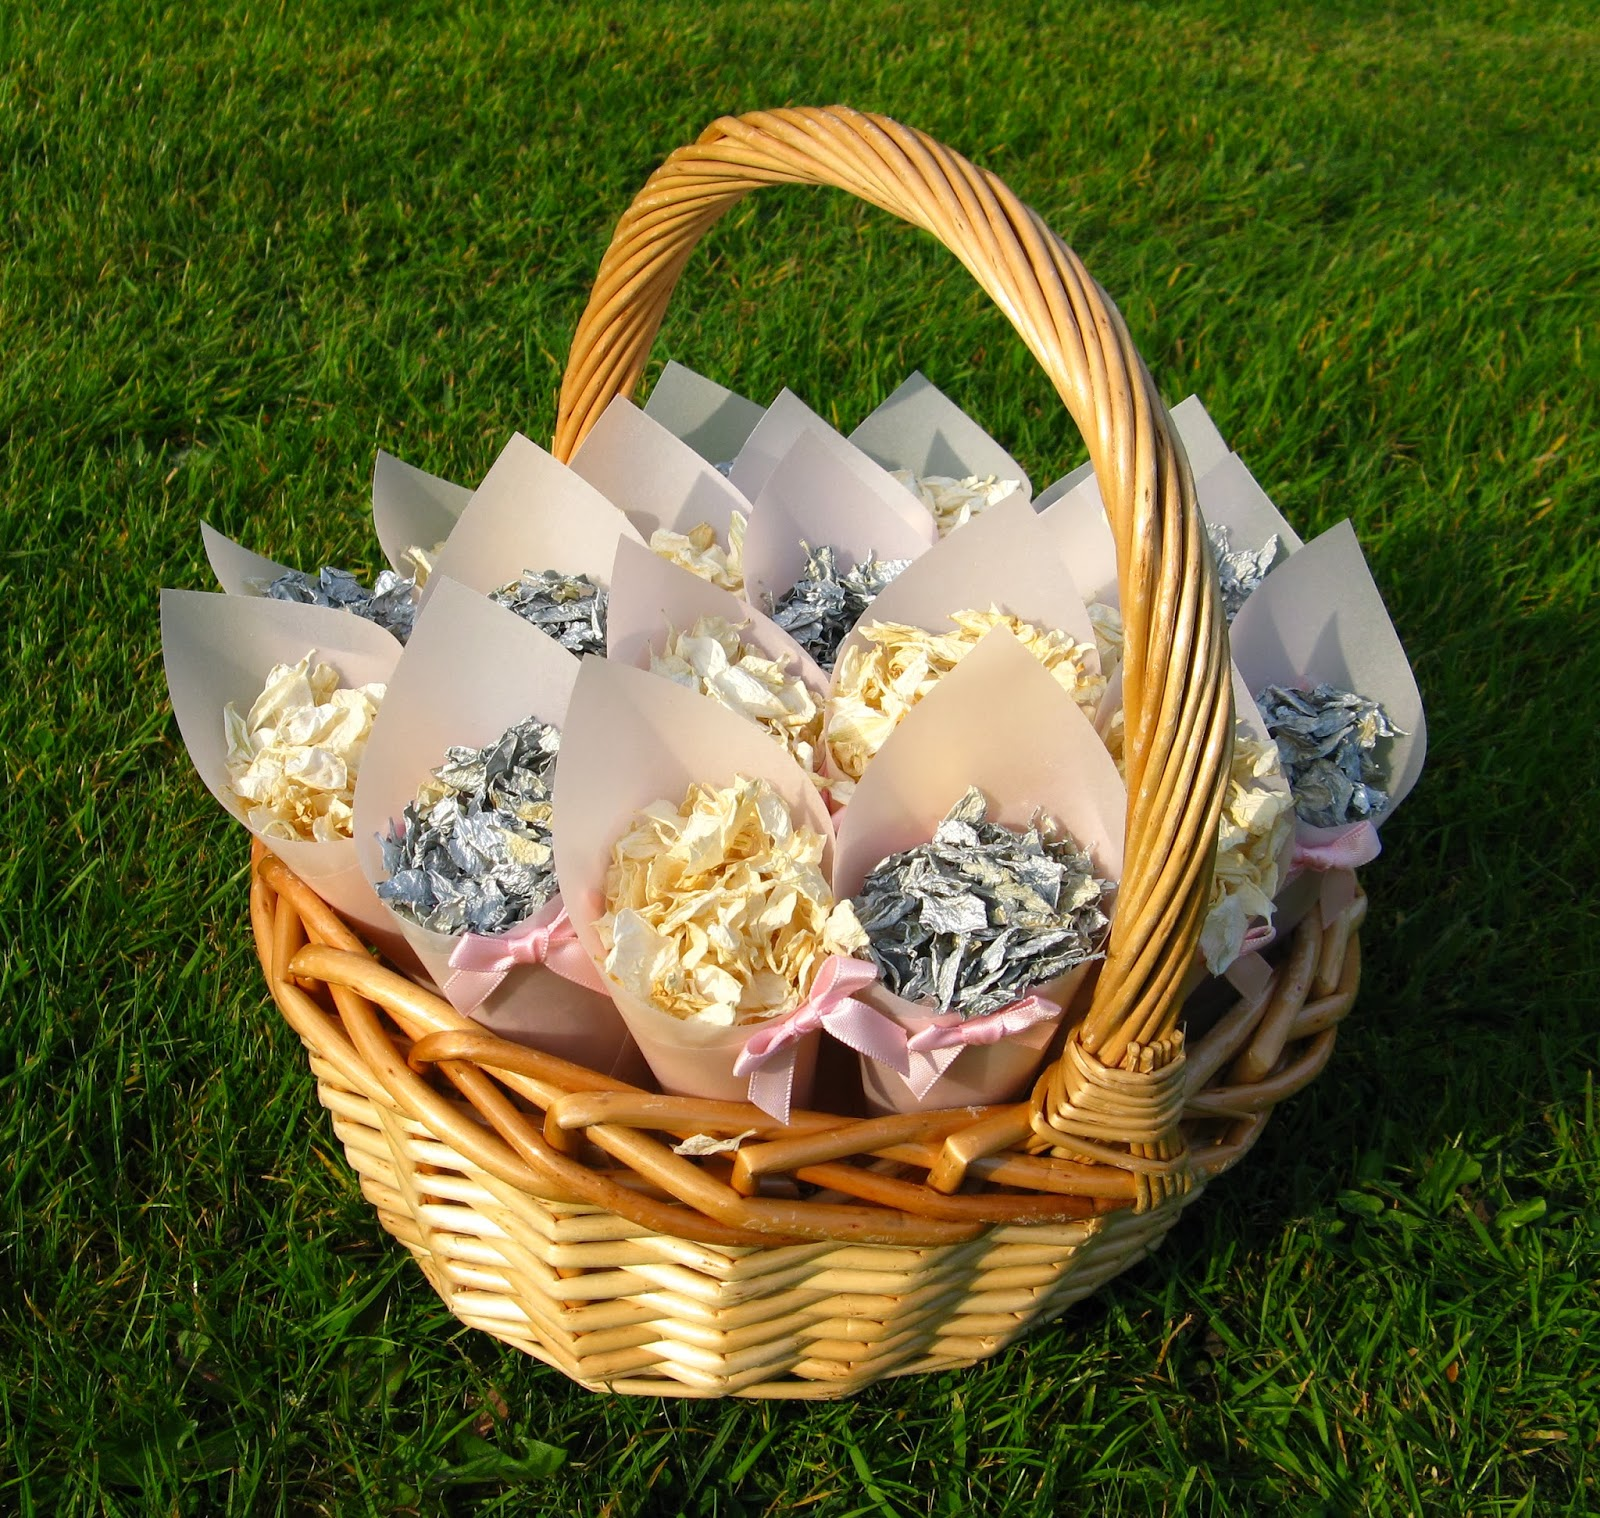 Wedding Baskets For Flower Petals : The confetti winter weddings real flower petal